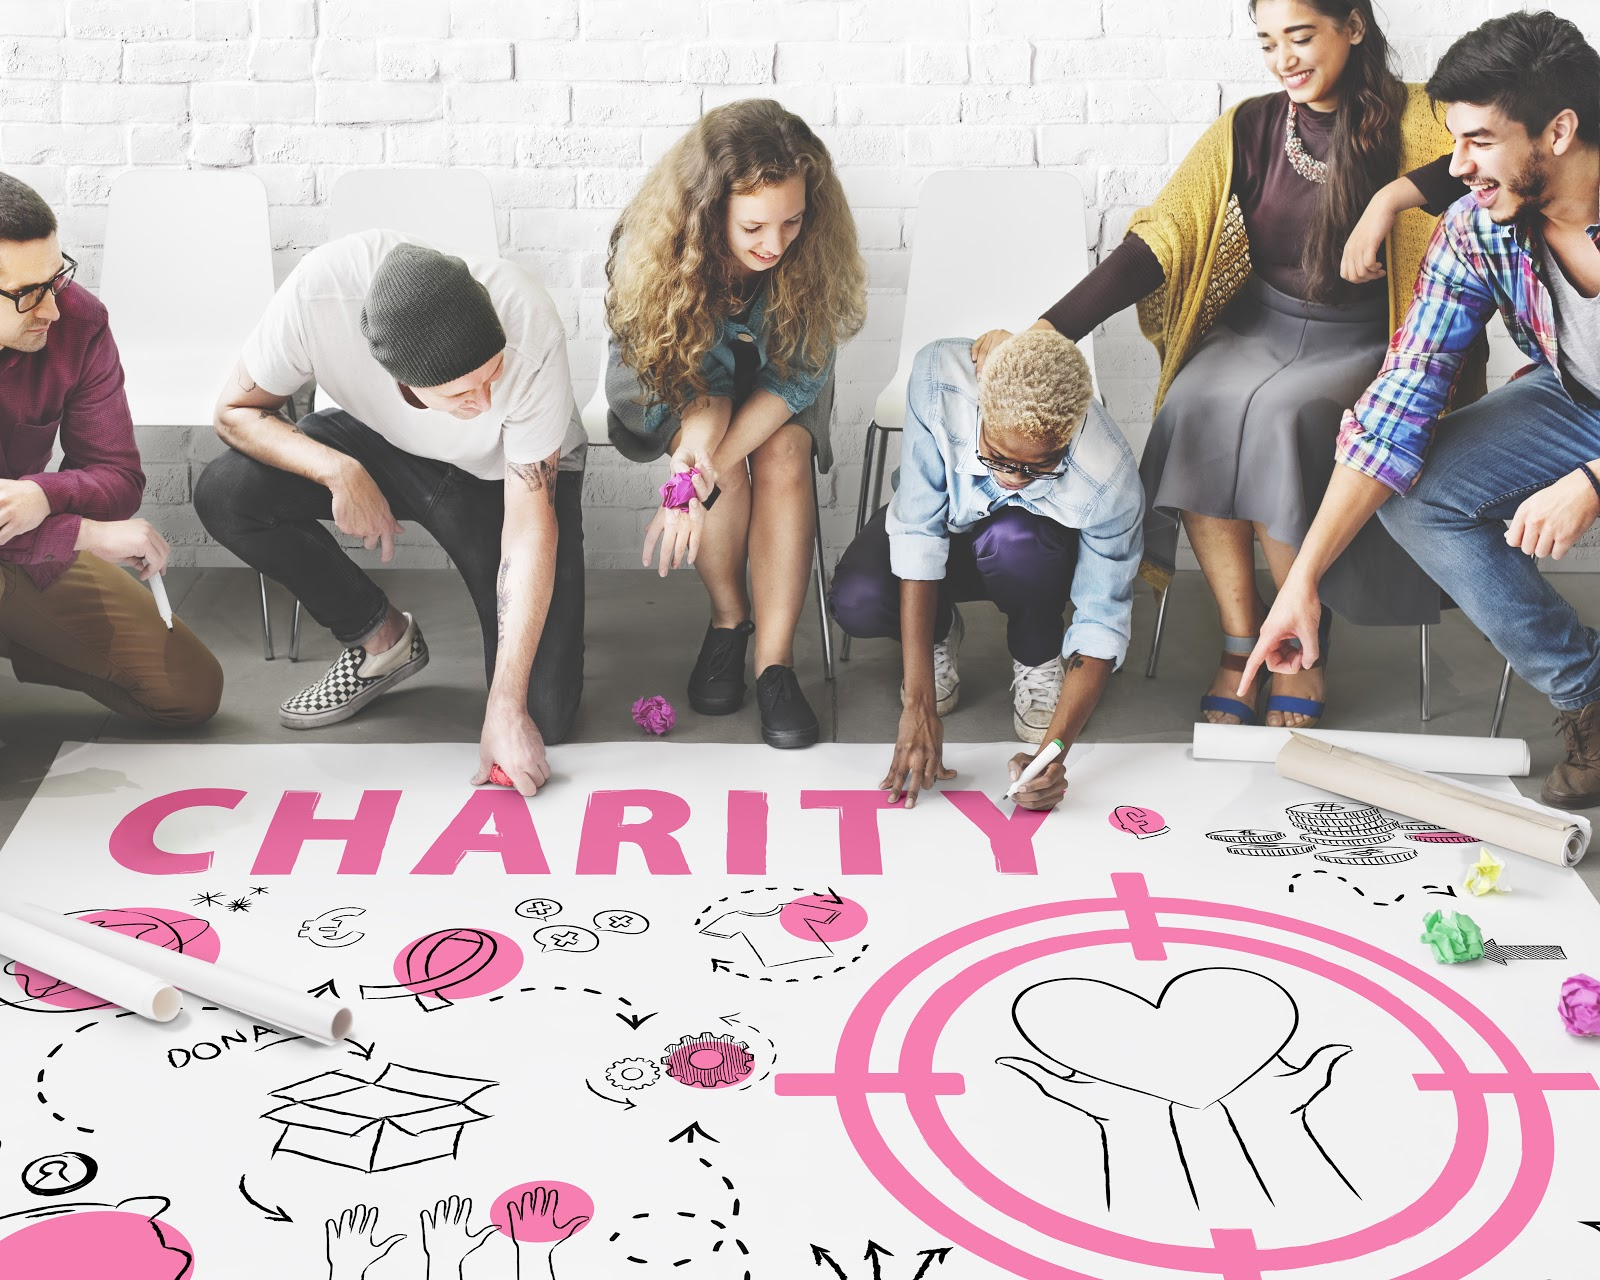 """Virtual fundraising events: Group of people drawing on large poster that reads """"Charity"""""""